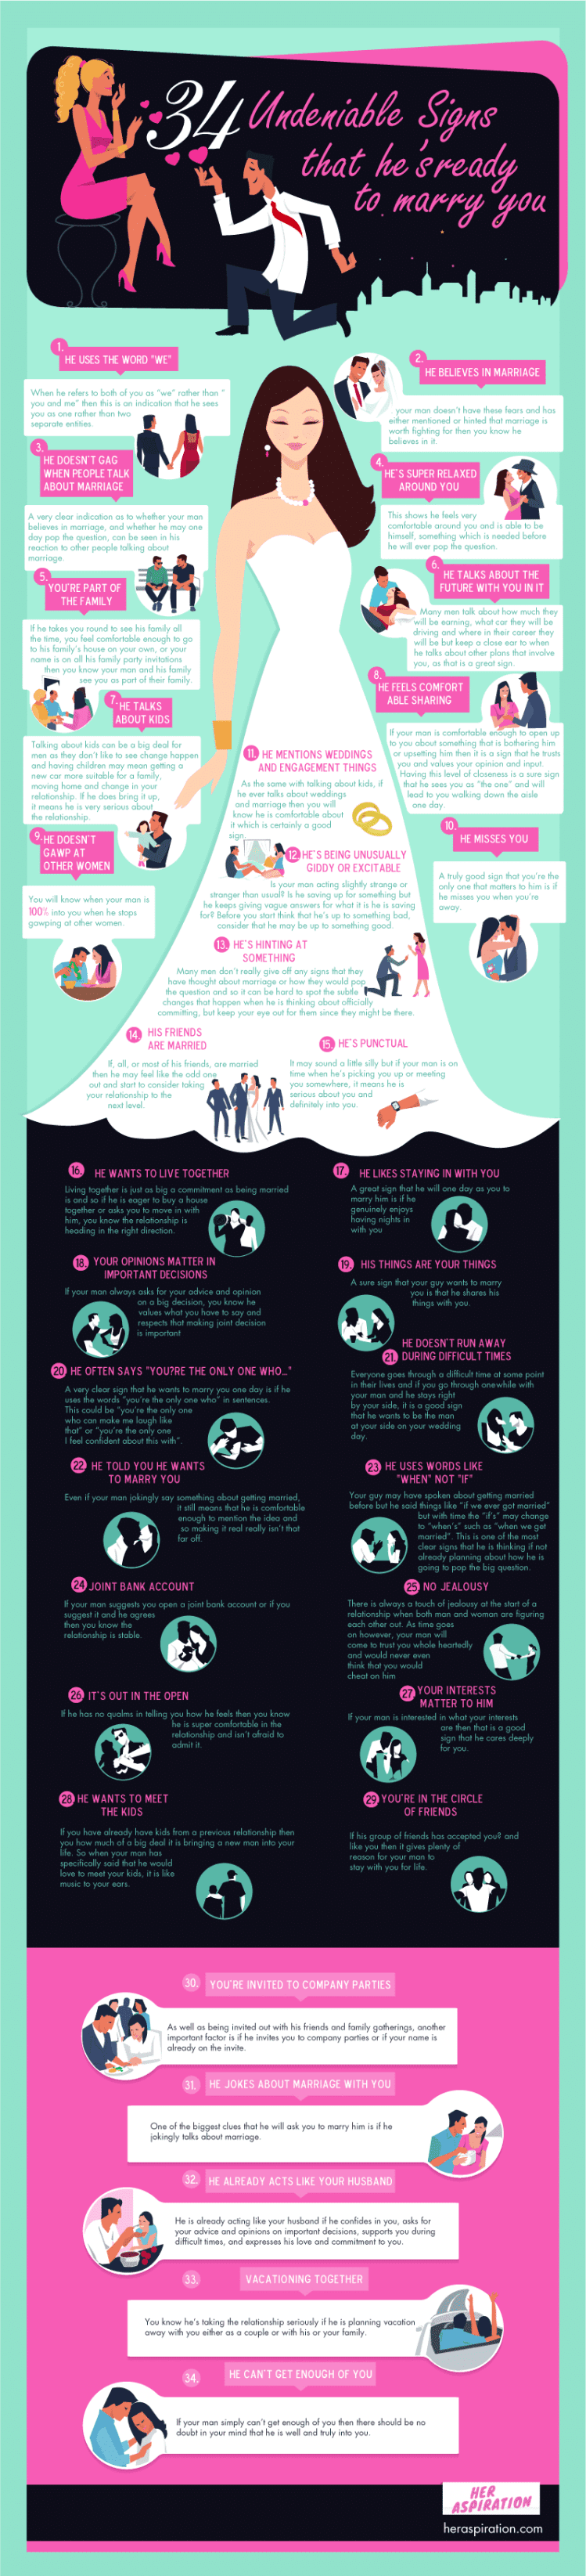 34 Undeniable Signs That He's Ready to Marry You #infographic #Marriage #Marriage Signs